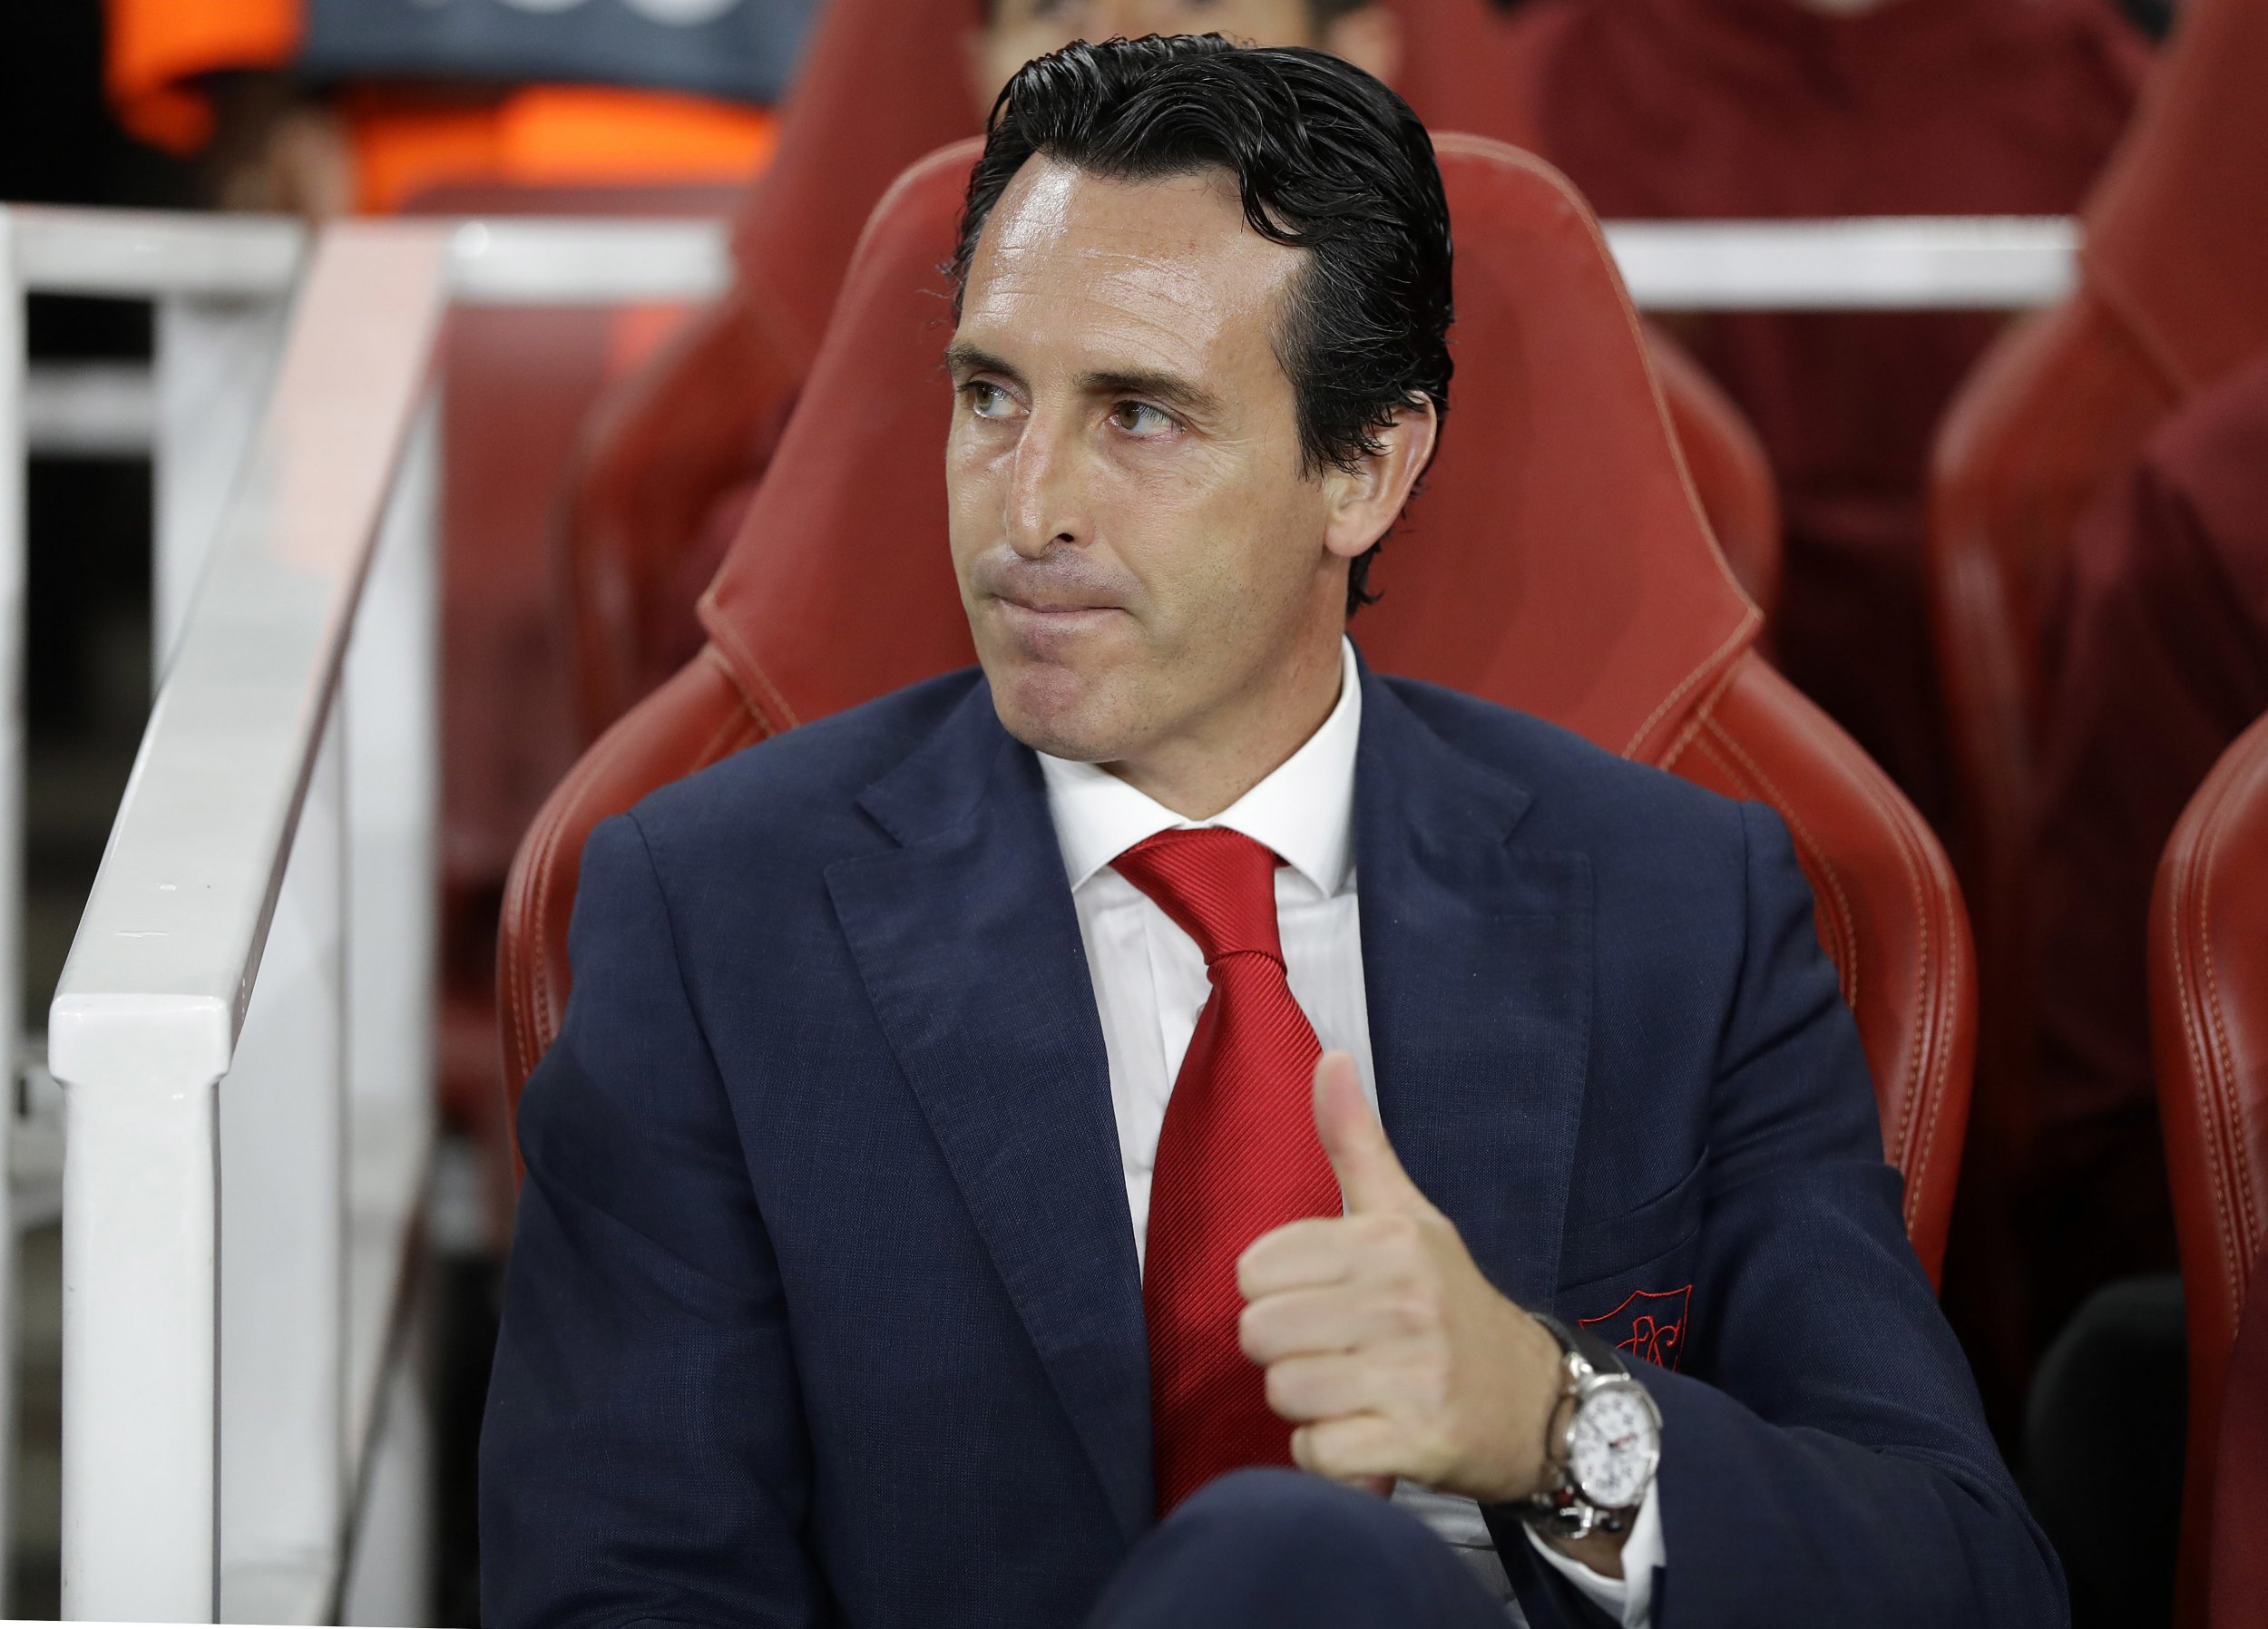 Arsenal's manager Unai Emery shows thumb up on his bench prior the Europa League Group E soccer match between Arsenal and Vorskla in London, England, Thursday, Sept. 20, 2018. (AP Photo/Kirsty Wigglesworth)